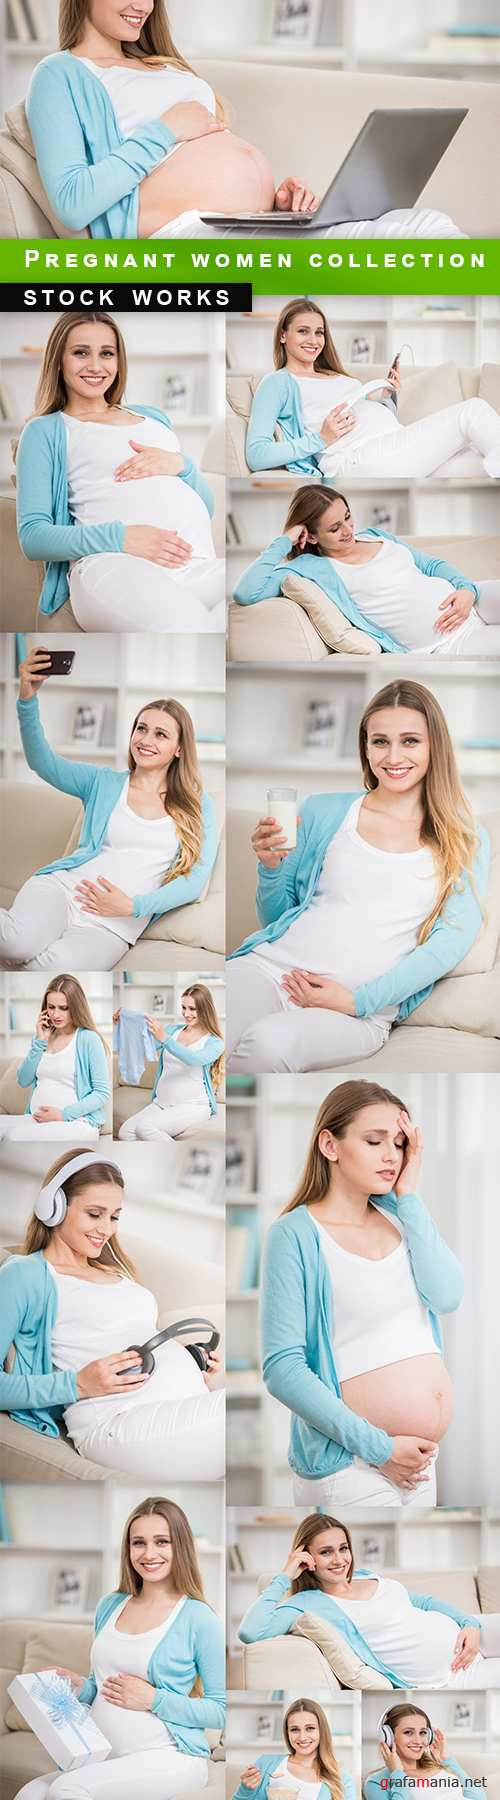 Pregnant women collection - 15 UHQ JPEG